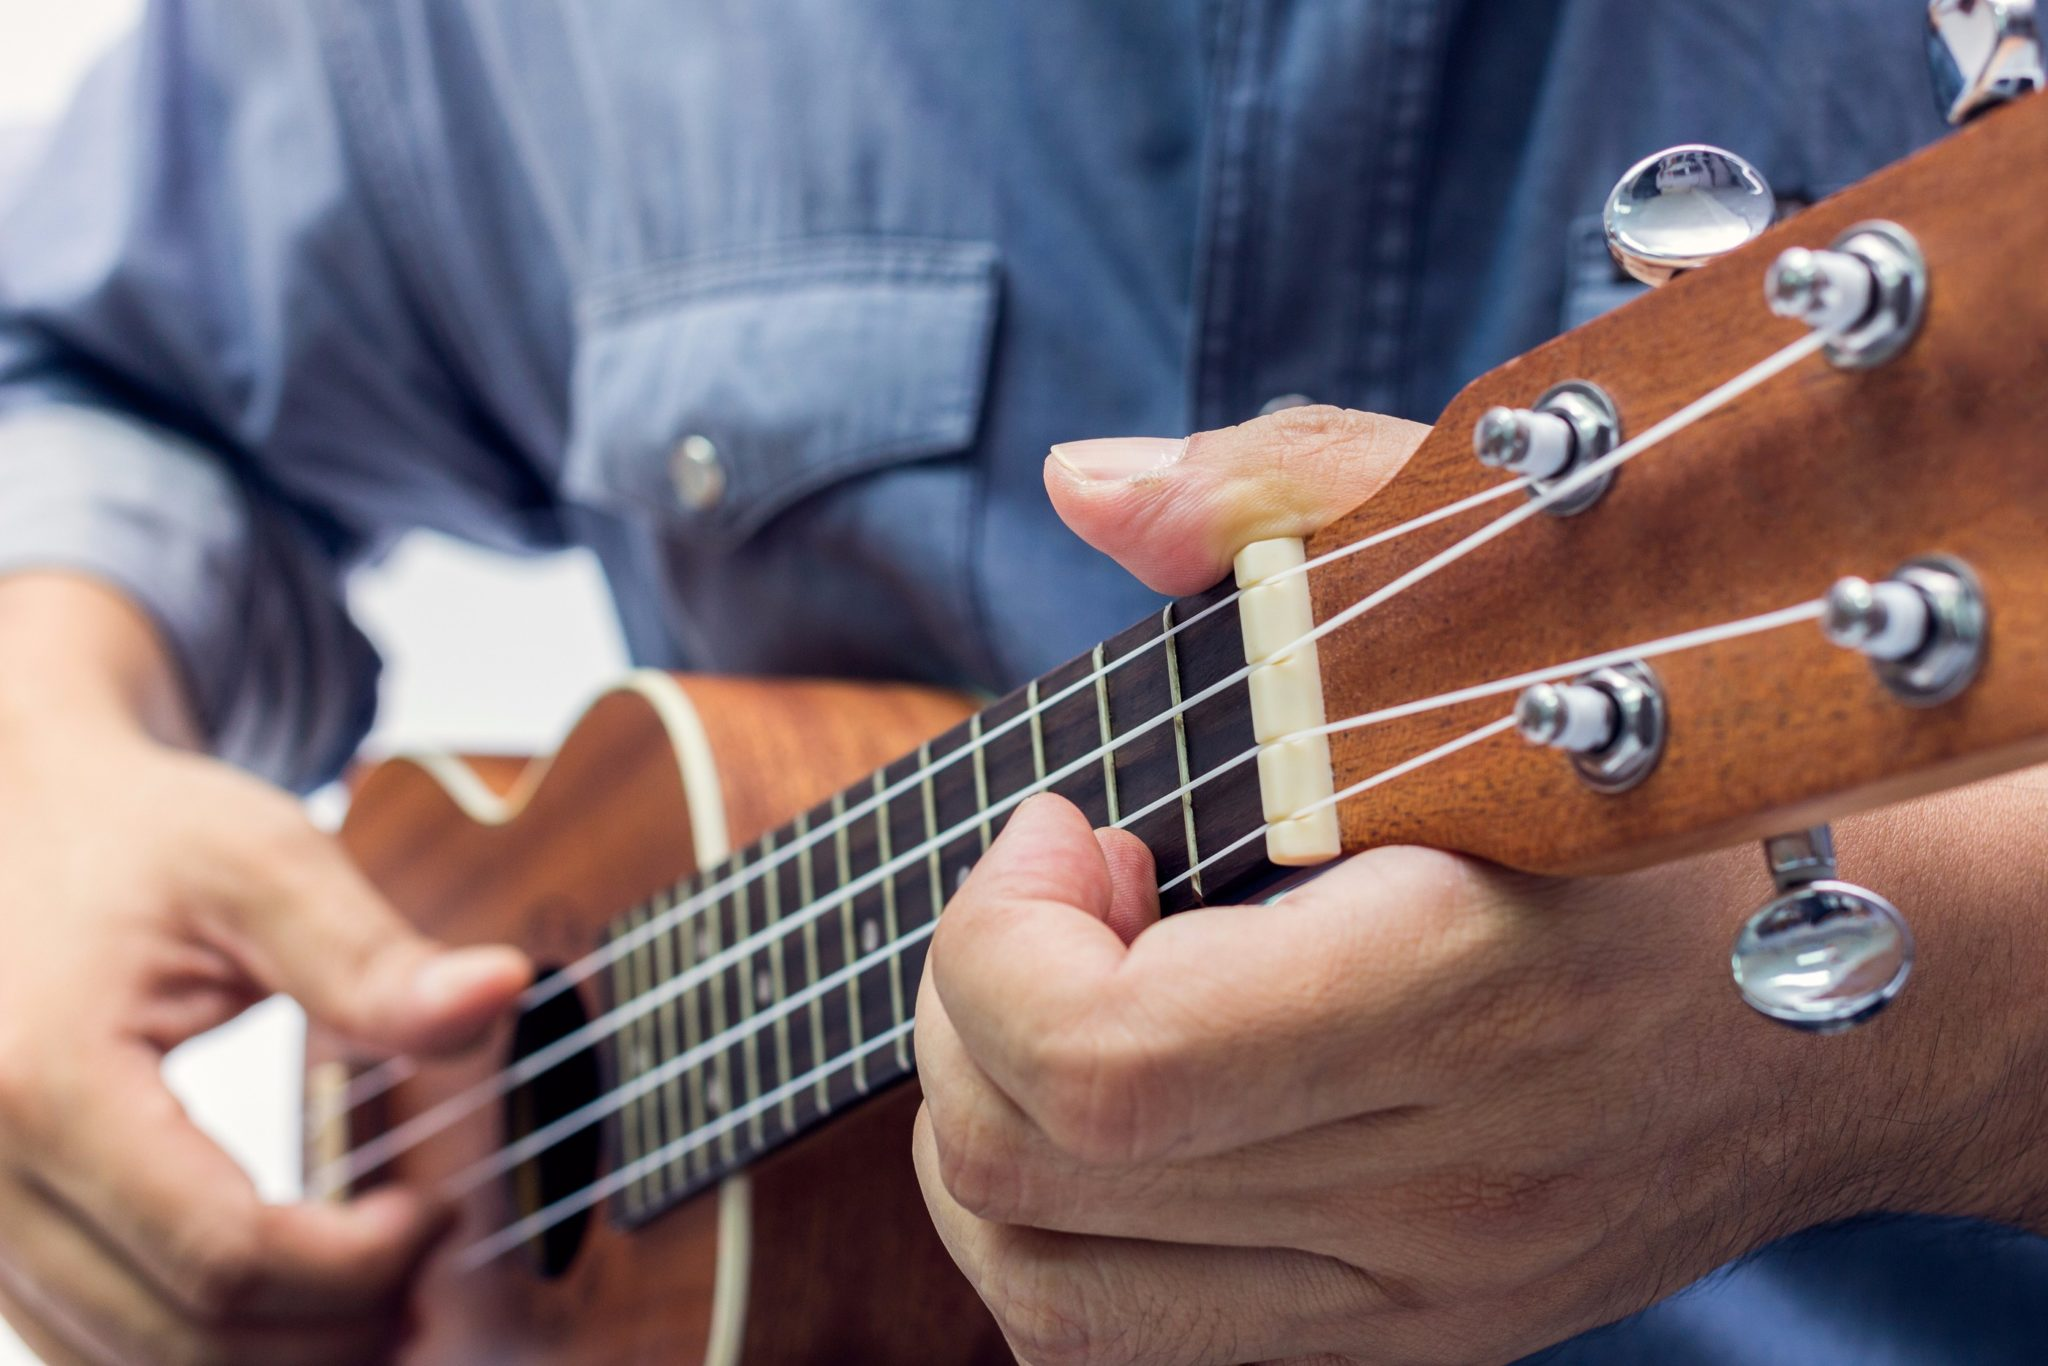 The man playing a brown ukulele